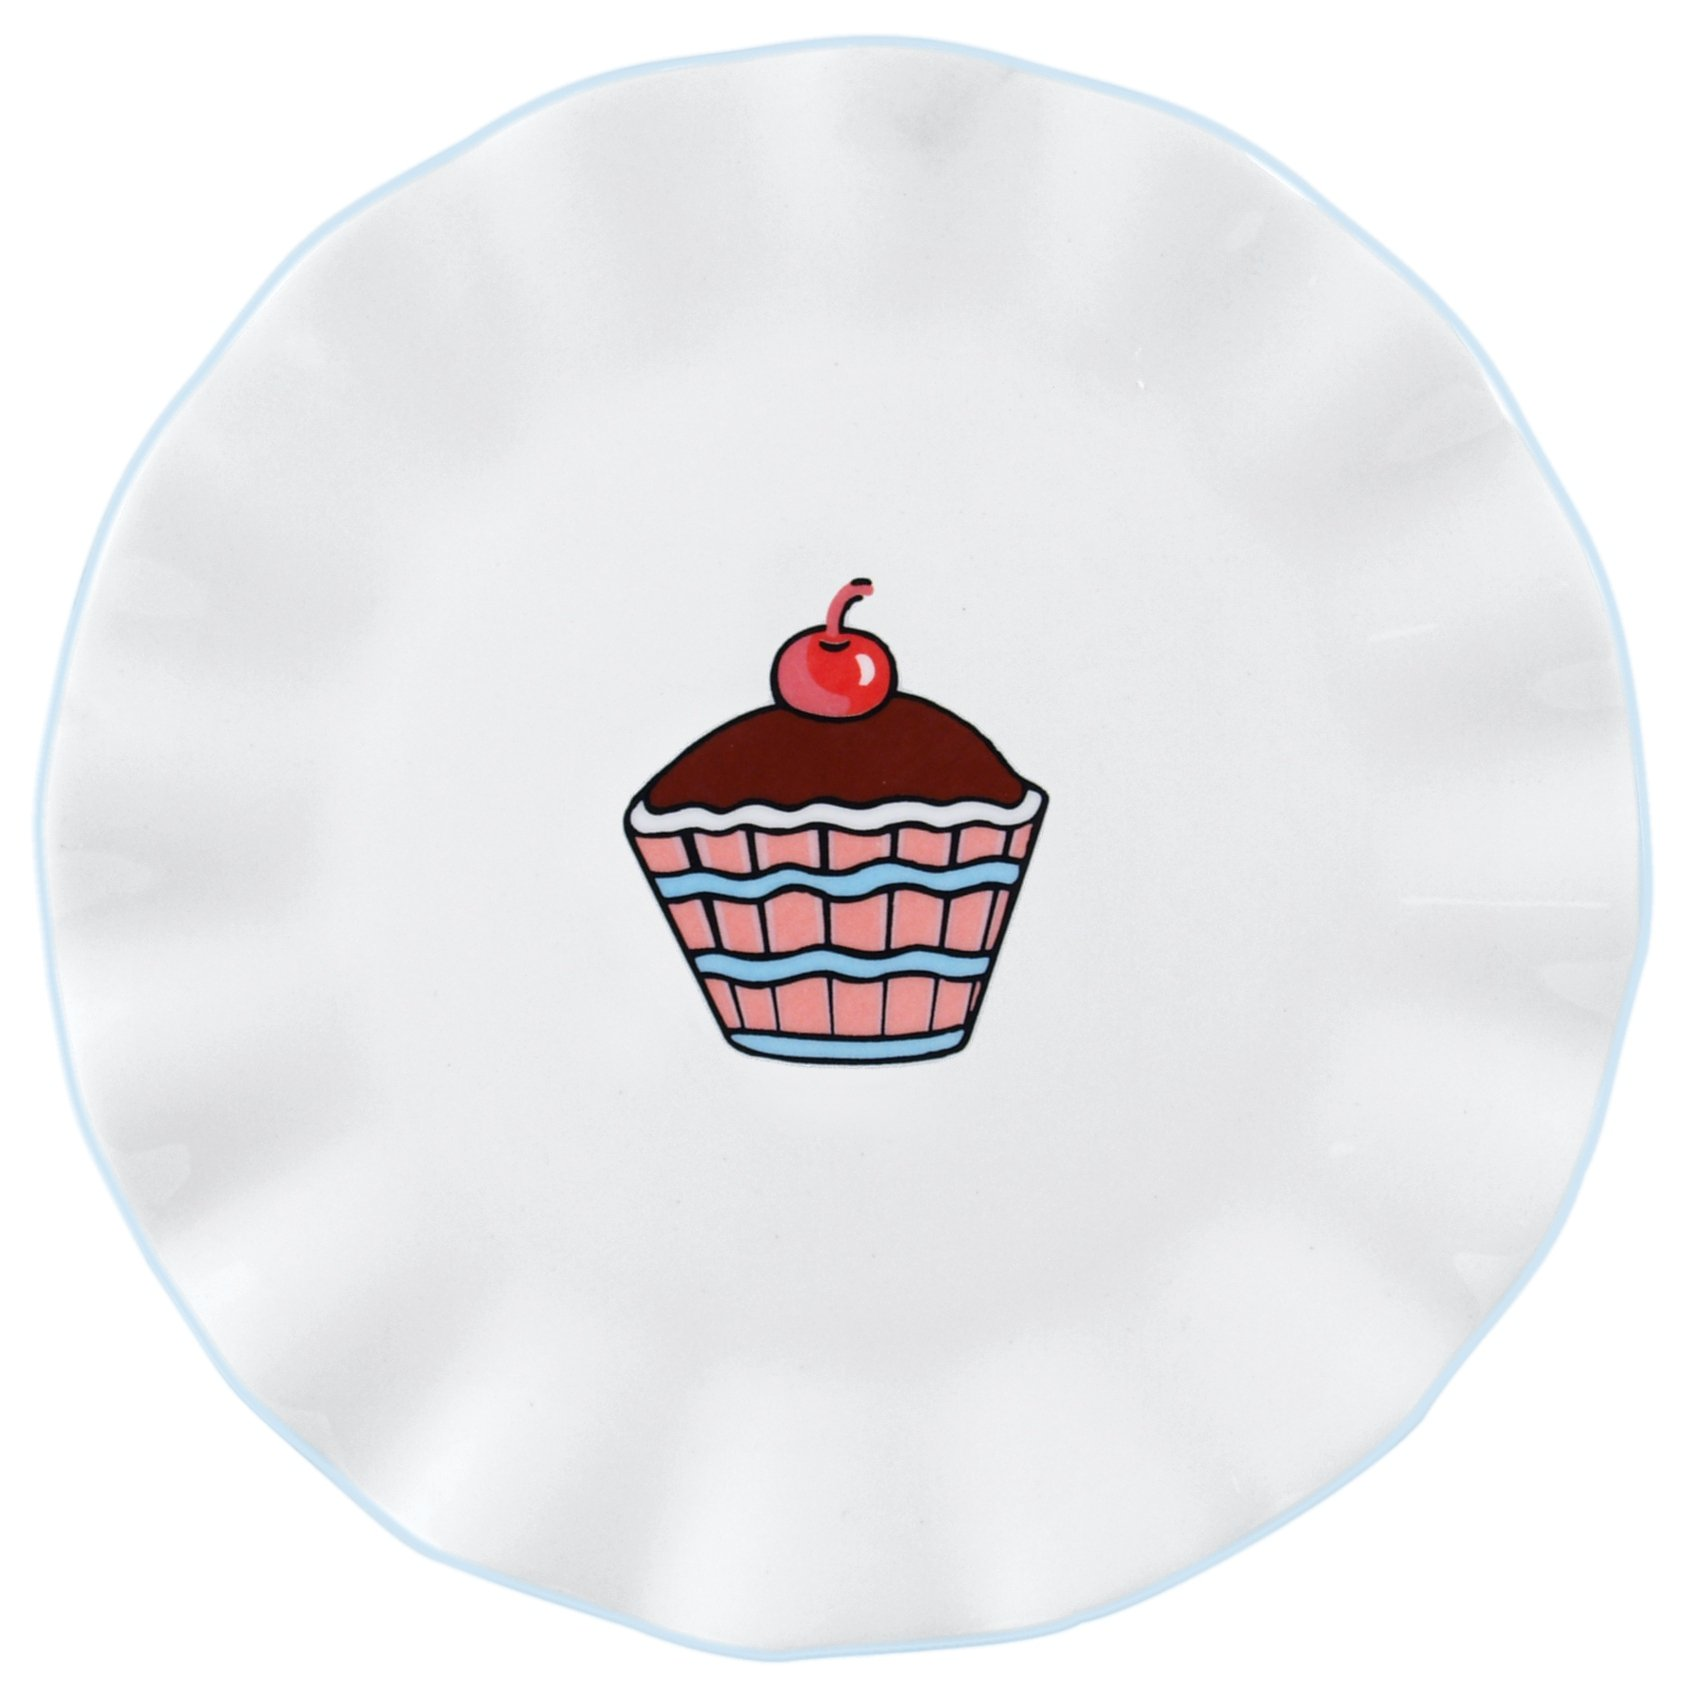 Everyday Cupcake 7'' Ruffles Plate [Set of 4] by Omniware